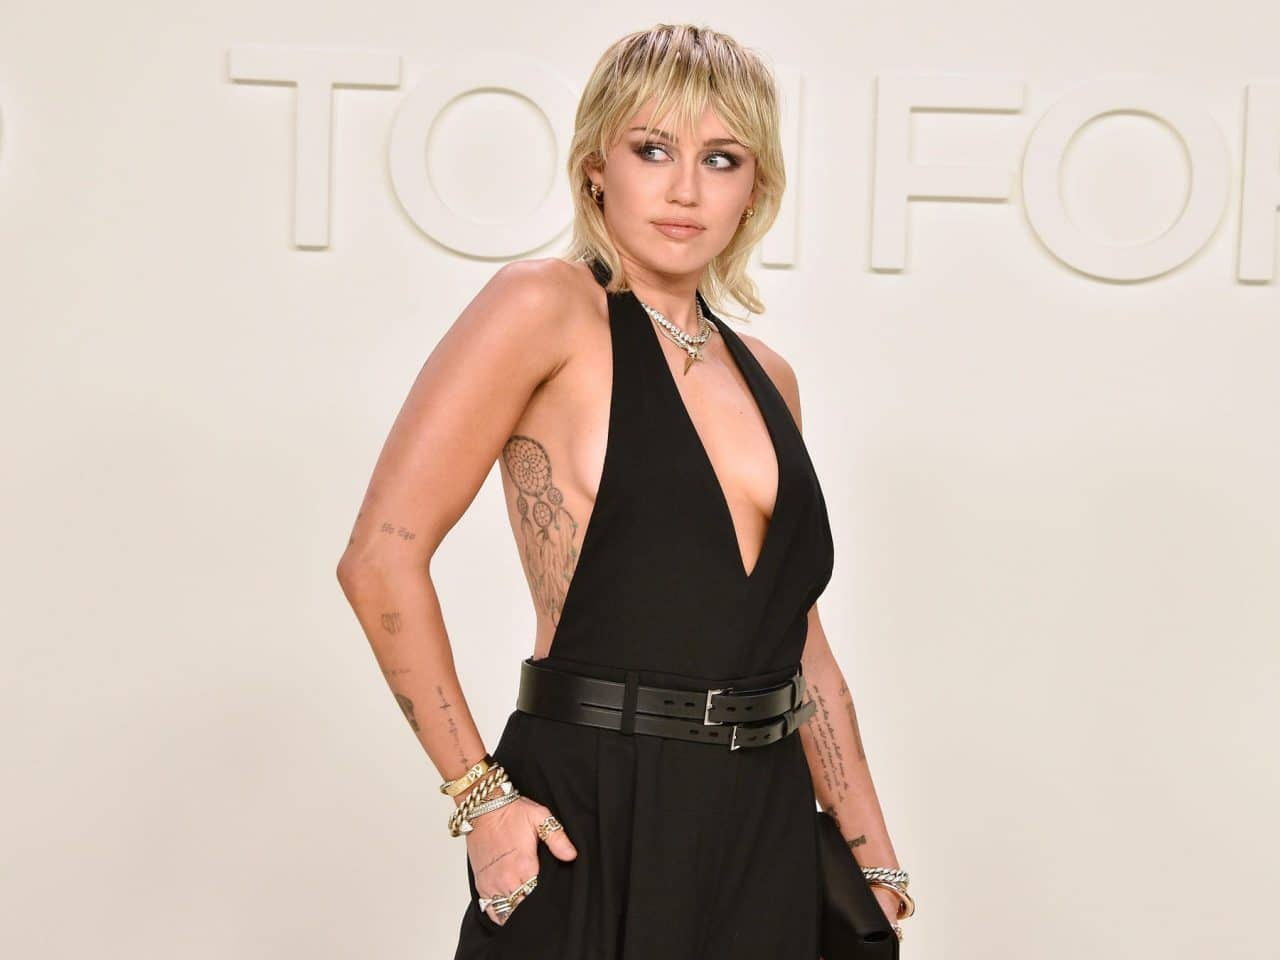 Miley Cyrus to Perform New 'MTV Unplugged' From Her Backyard